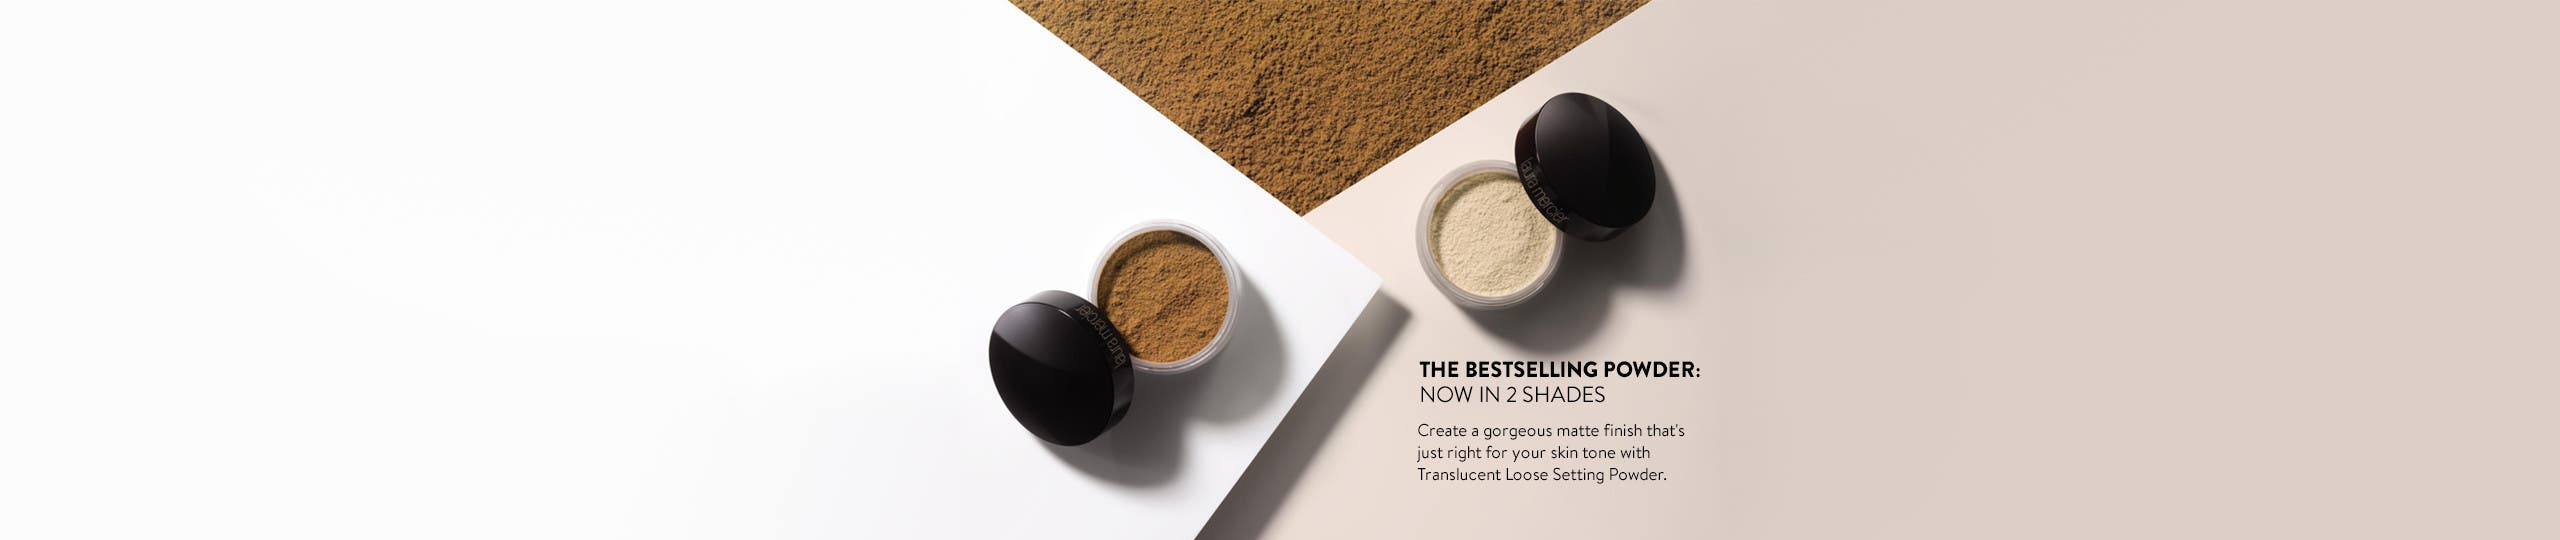 The bestselling powder: now in 2 shades.